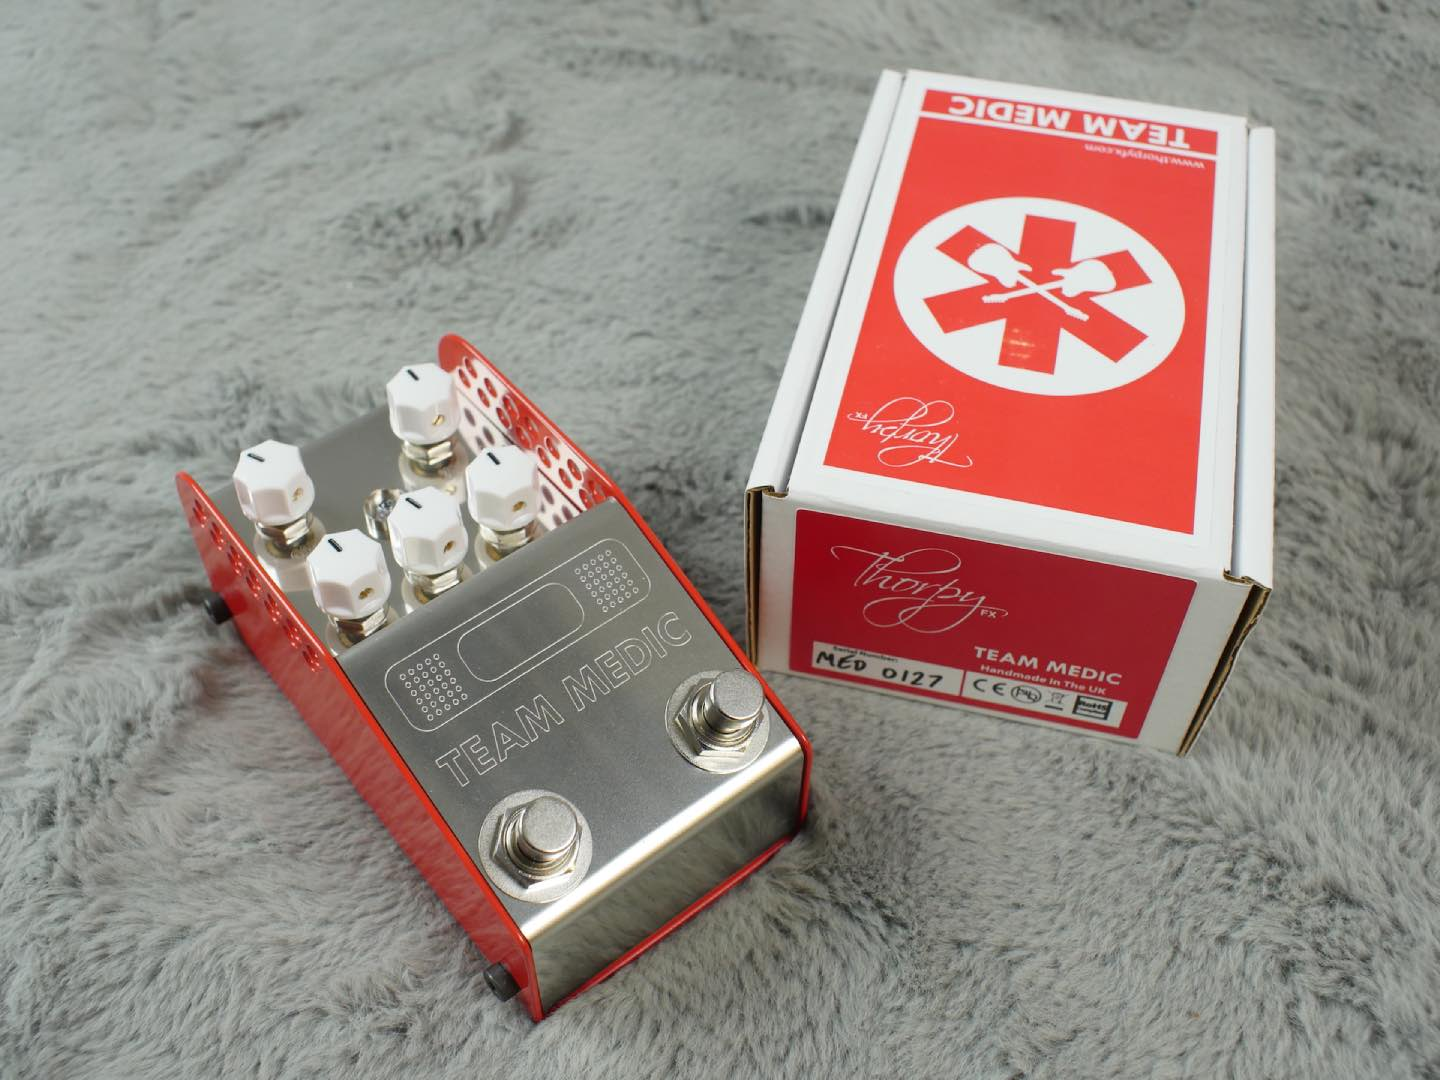 Thorpy FX Team Medic - Brand New!